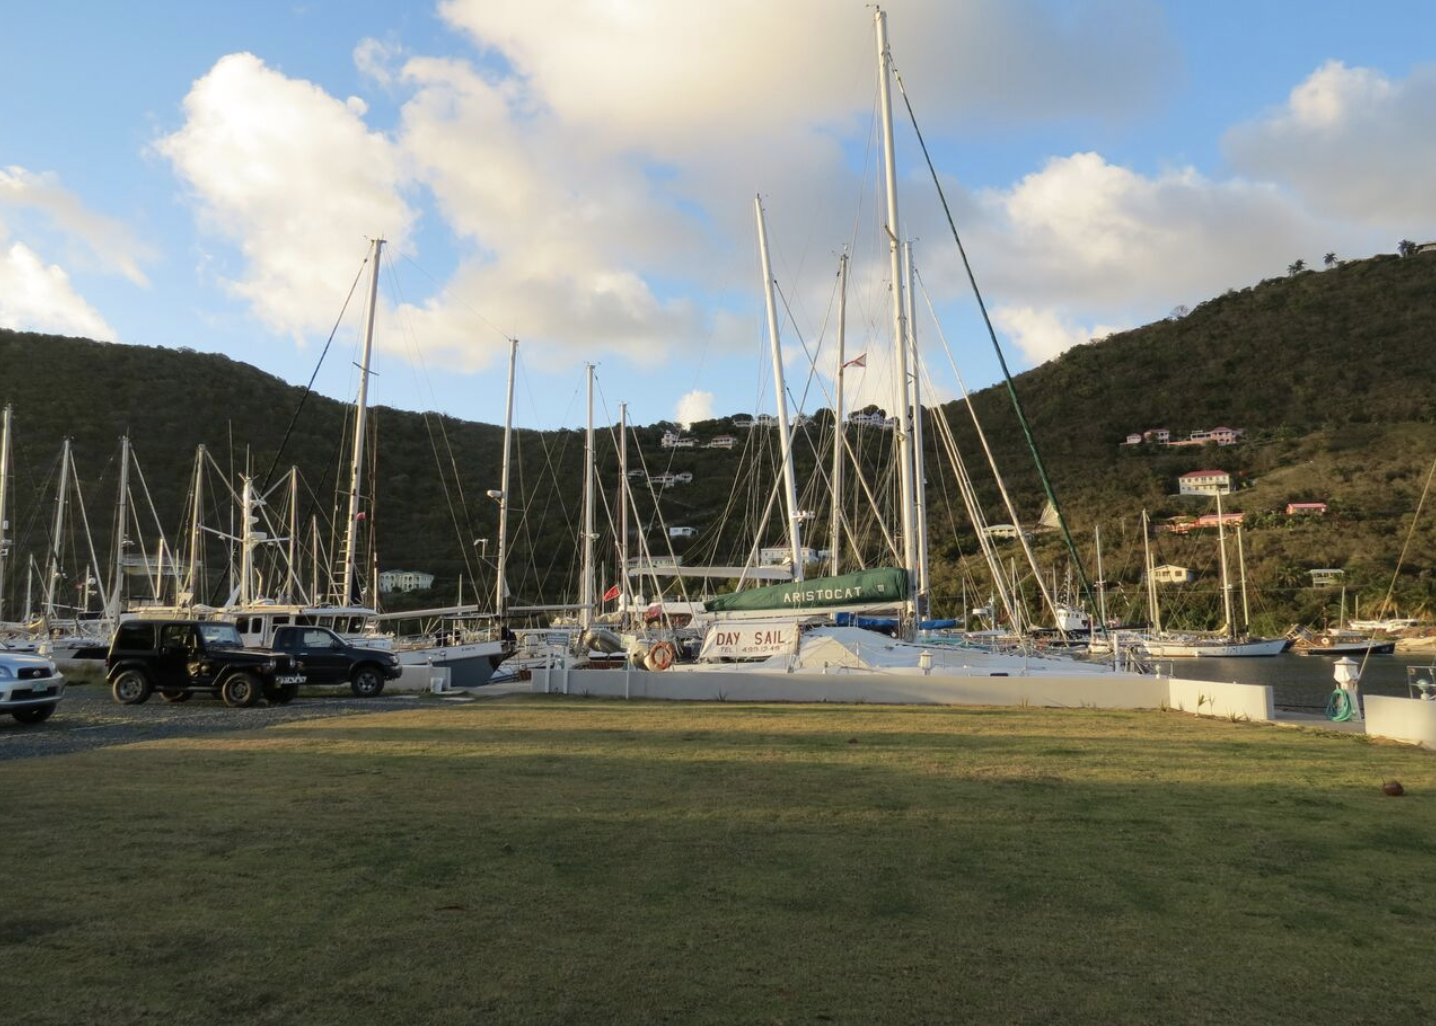 Light House Marina-BVI Boat Yard | Snag-A-Slip